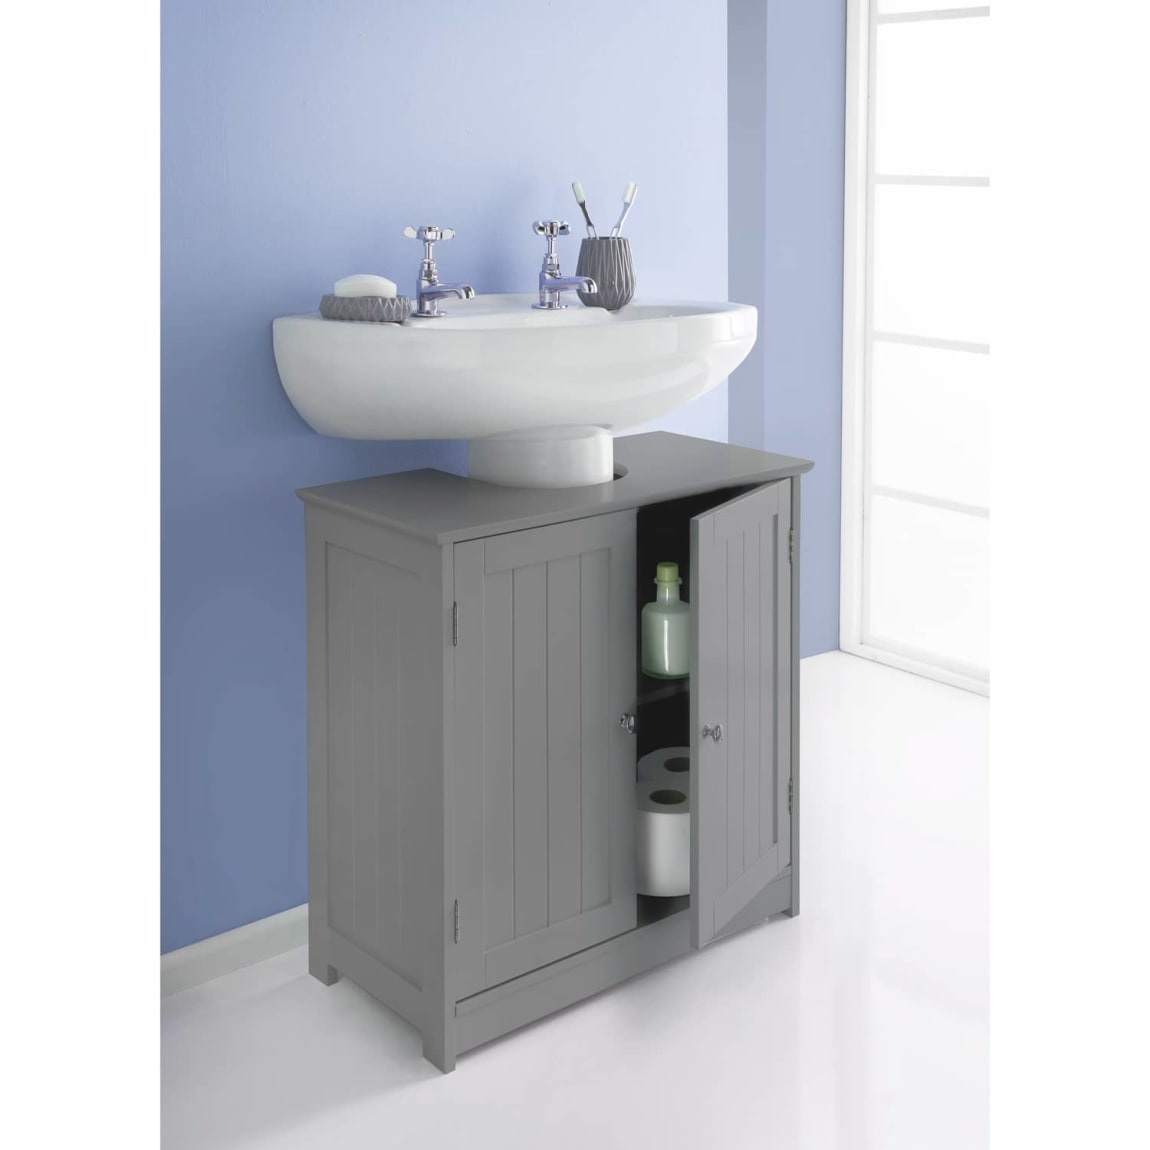 Maine Under Sink Unit - Grey